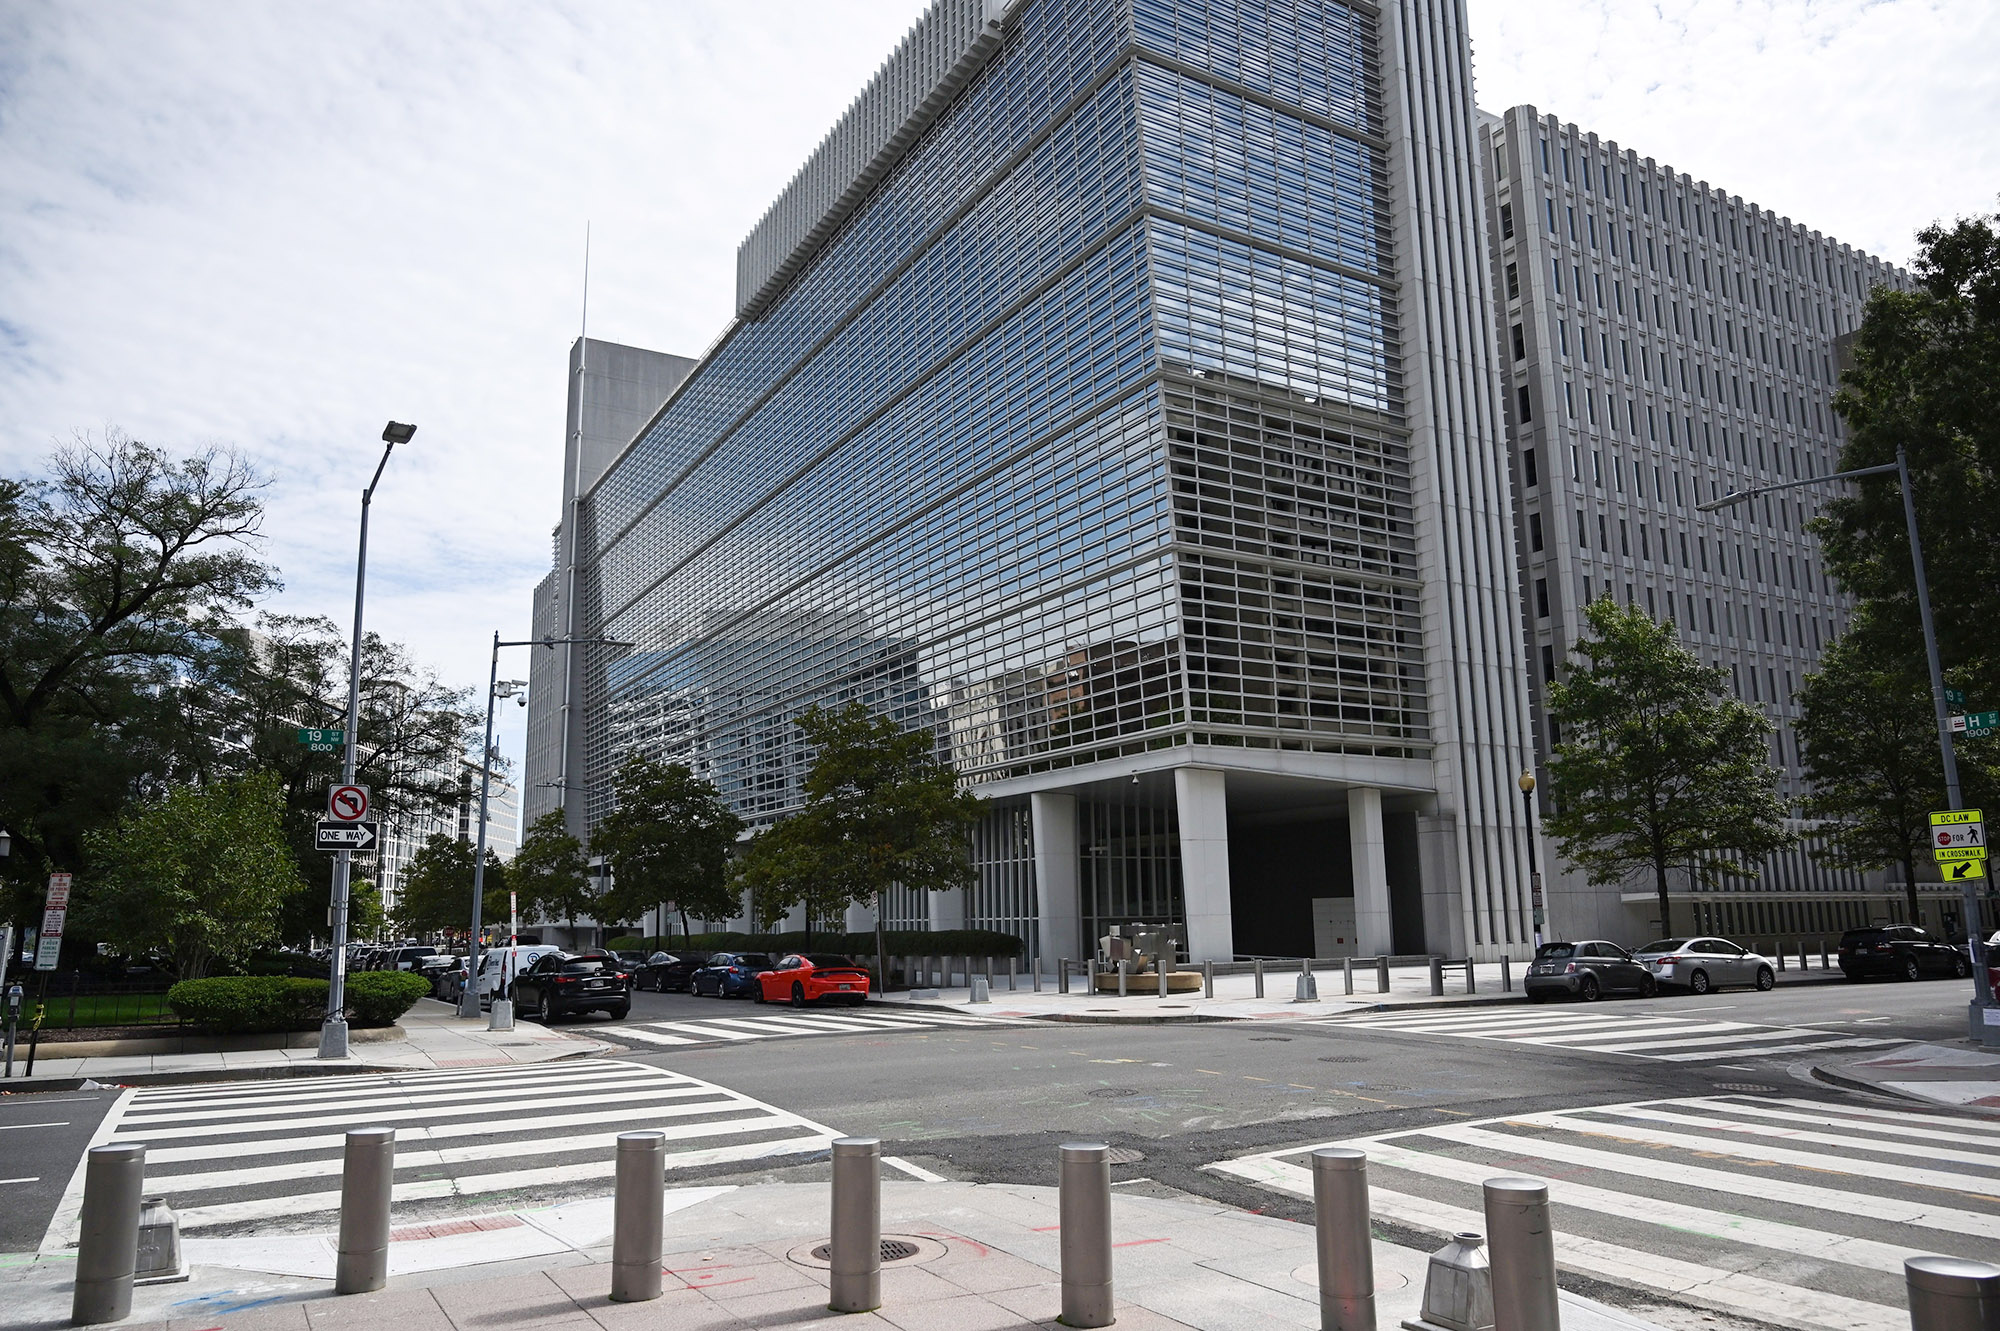 The World Bank headquarters located in Washington DC, on October 1, 2020.